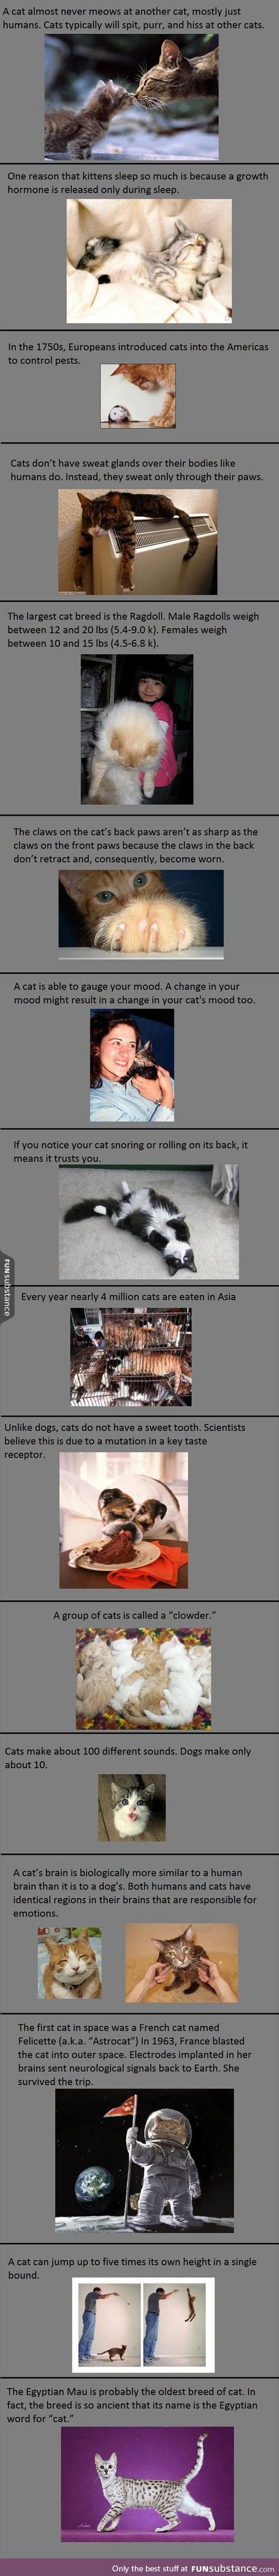 Interesting Cat Facts You Probably Don't Know